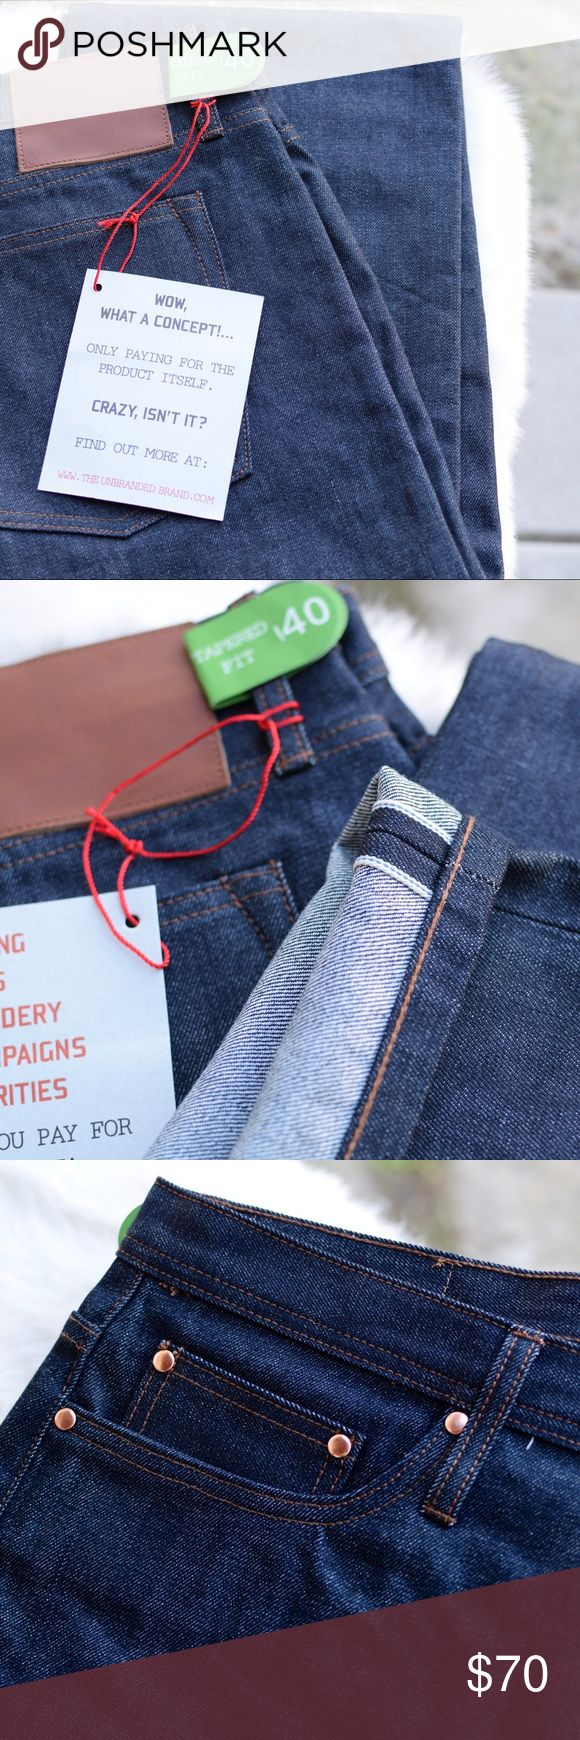 The Unbranded Brand Raw Selvedge Denim Jeans NWT. The UB201 is a tapered fit. Roomier through the seat and thigh and tapers down to a narrow leg opening. Made from 100% cotton sanforized 14.5oz Japanese rope dyed indigo selvedge raw denim. Featuring a button fly, hidden rivets, chain stitched hem and leather patch. - 14.5oz Japanese raw sanforized selvedge denim - Rope dyed indigo - 5 pocket, button fly closure - Hidden selvedge coin pocket detail - Hidden rivets - Blue ear selvedge…